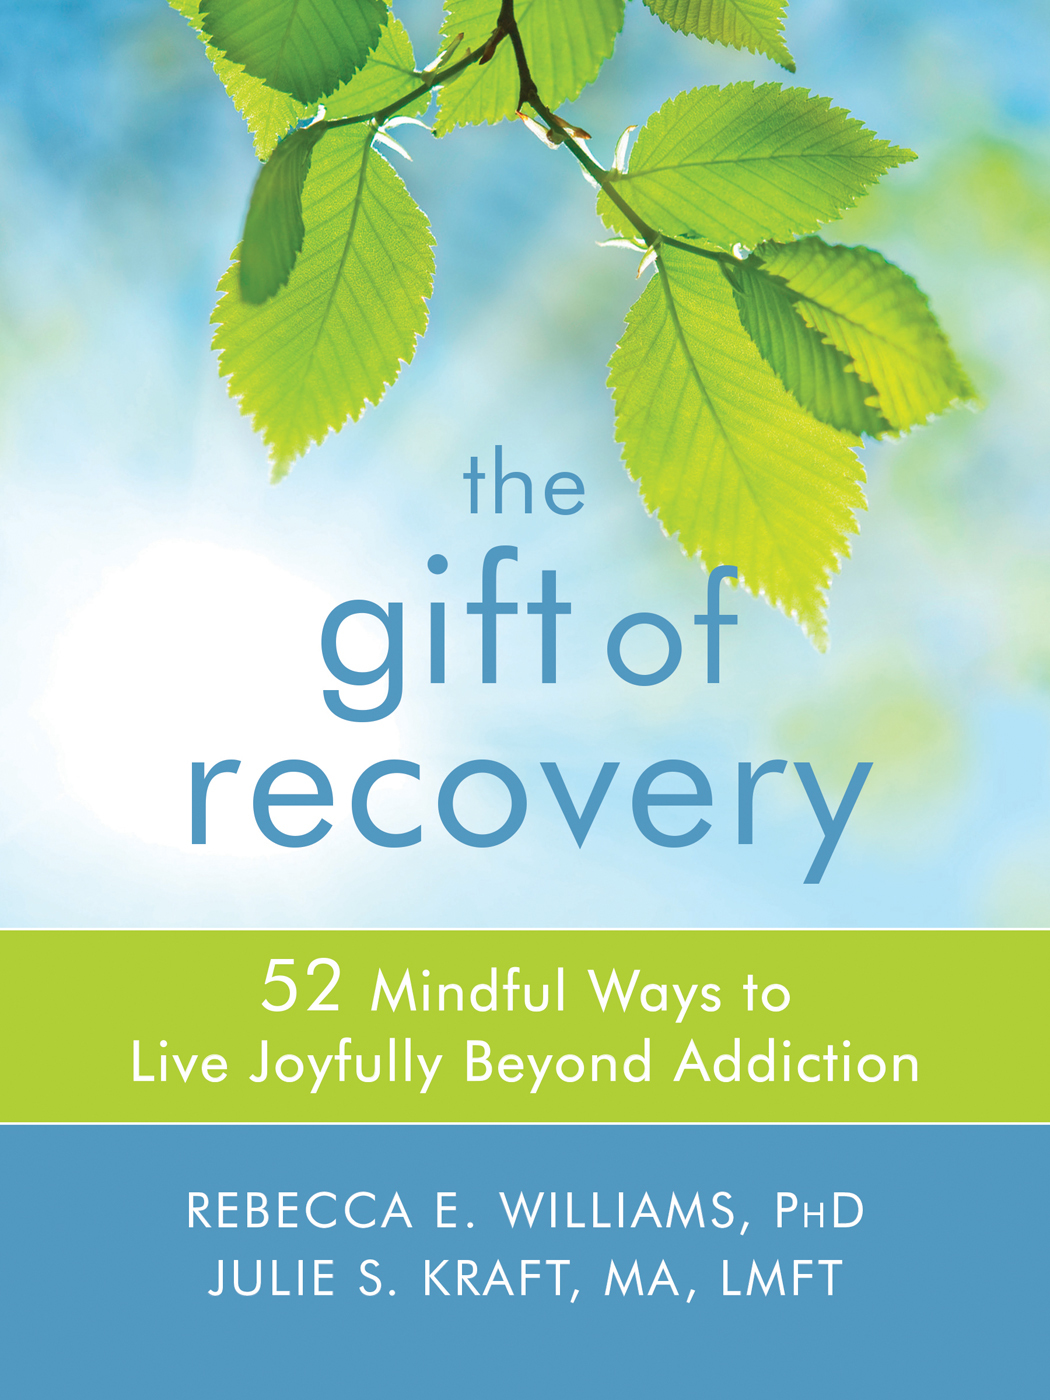 The Gift of Recovery 52 Mindful Ways to Live Joyfully Beyond Addiction